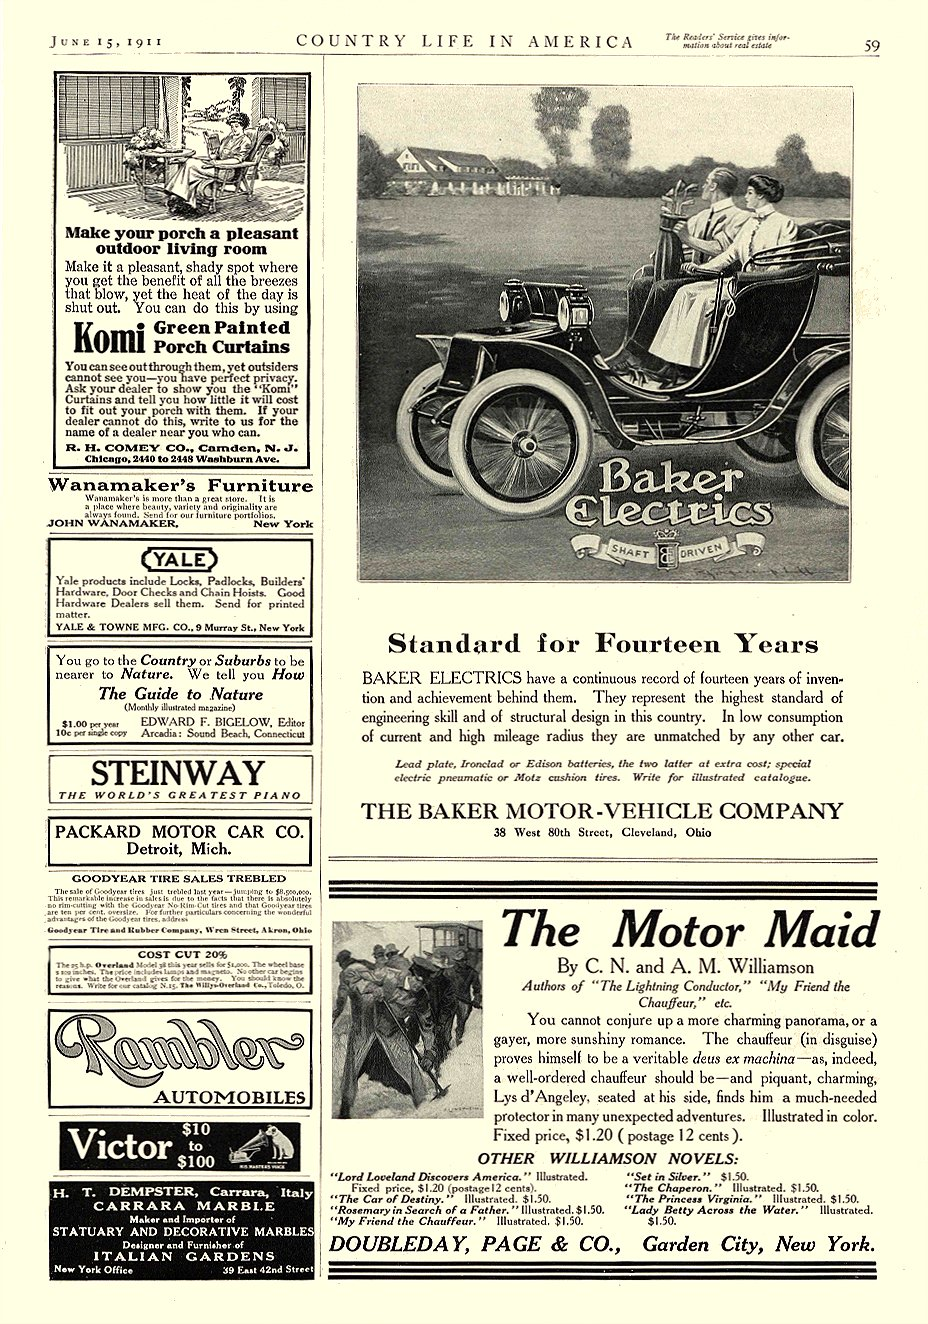 1911 6 15 BAKER Electric Standard for Fourteen Years THE BAKER MOTOR-VEHICLE COMPANY Cleveland, OHIO COUNTRY LIFE IN AMERICA June 15, 1911 10″x14″ page 59